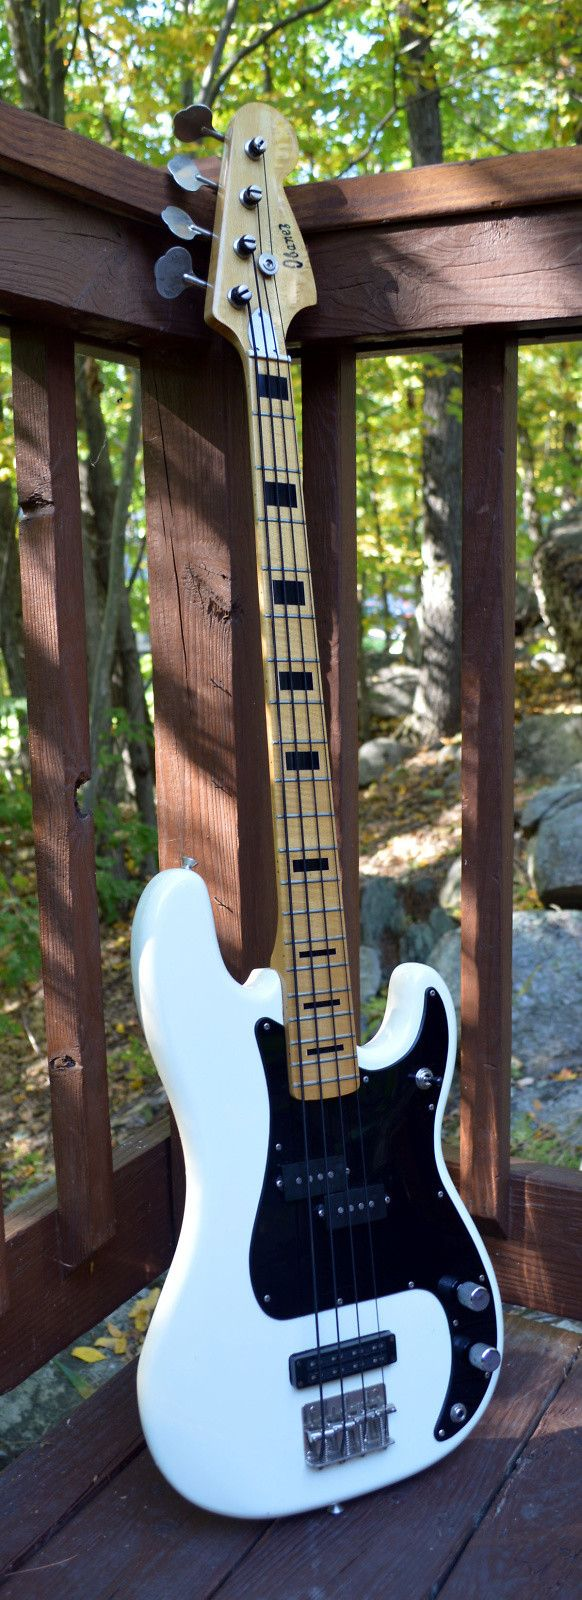 Rare 1976 Ibanez 2369B-WH Silver Series P Bass